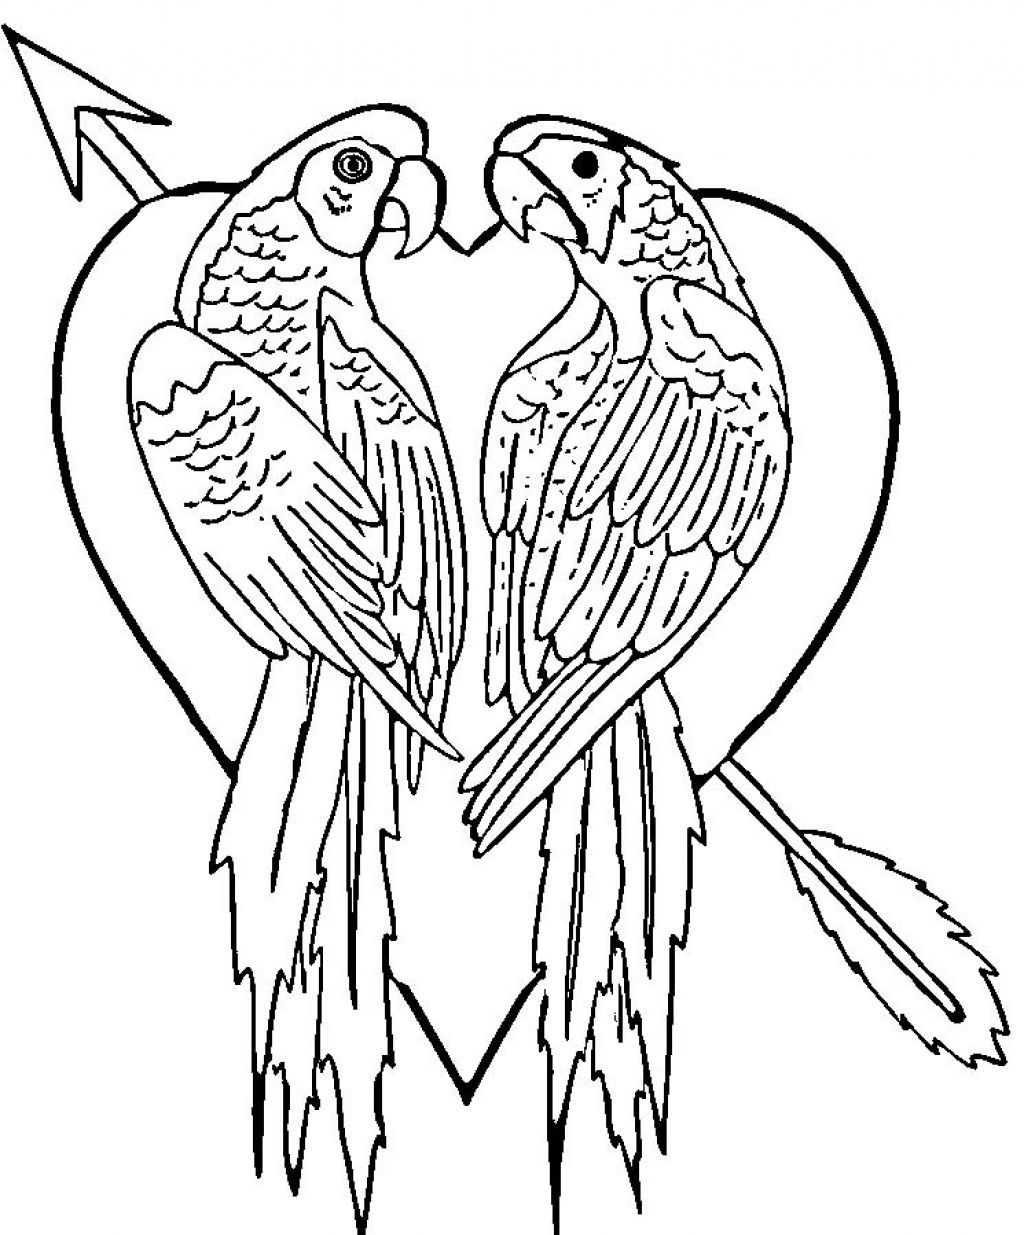 King Parrot coloring #11, Download drawings